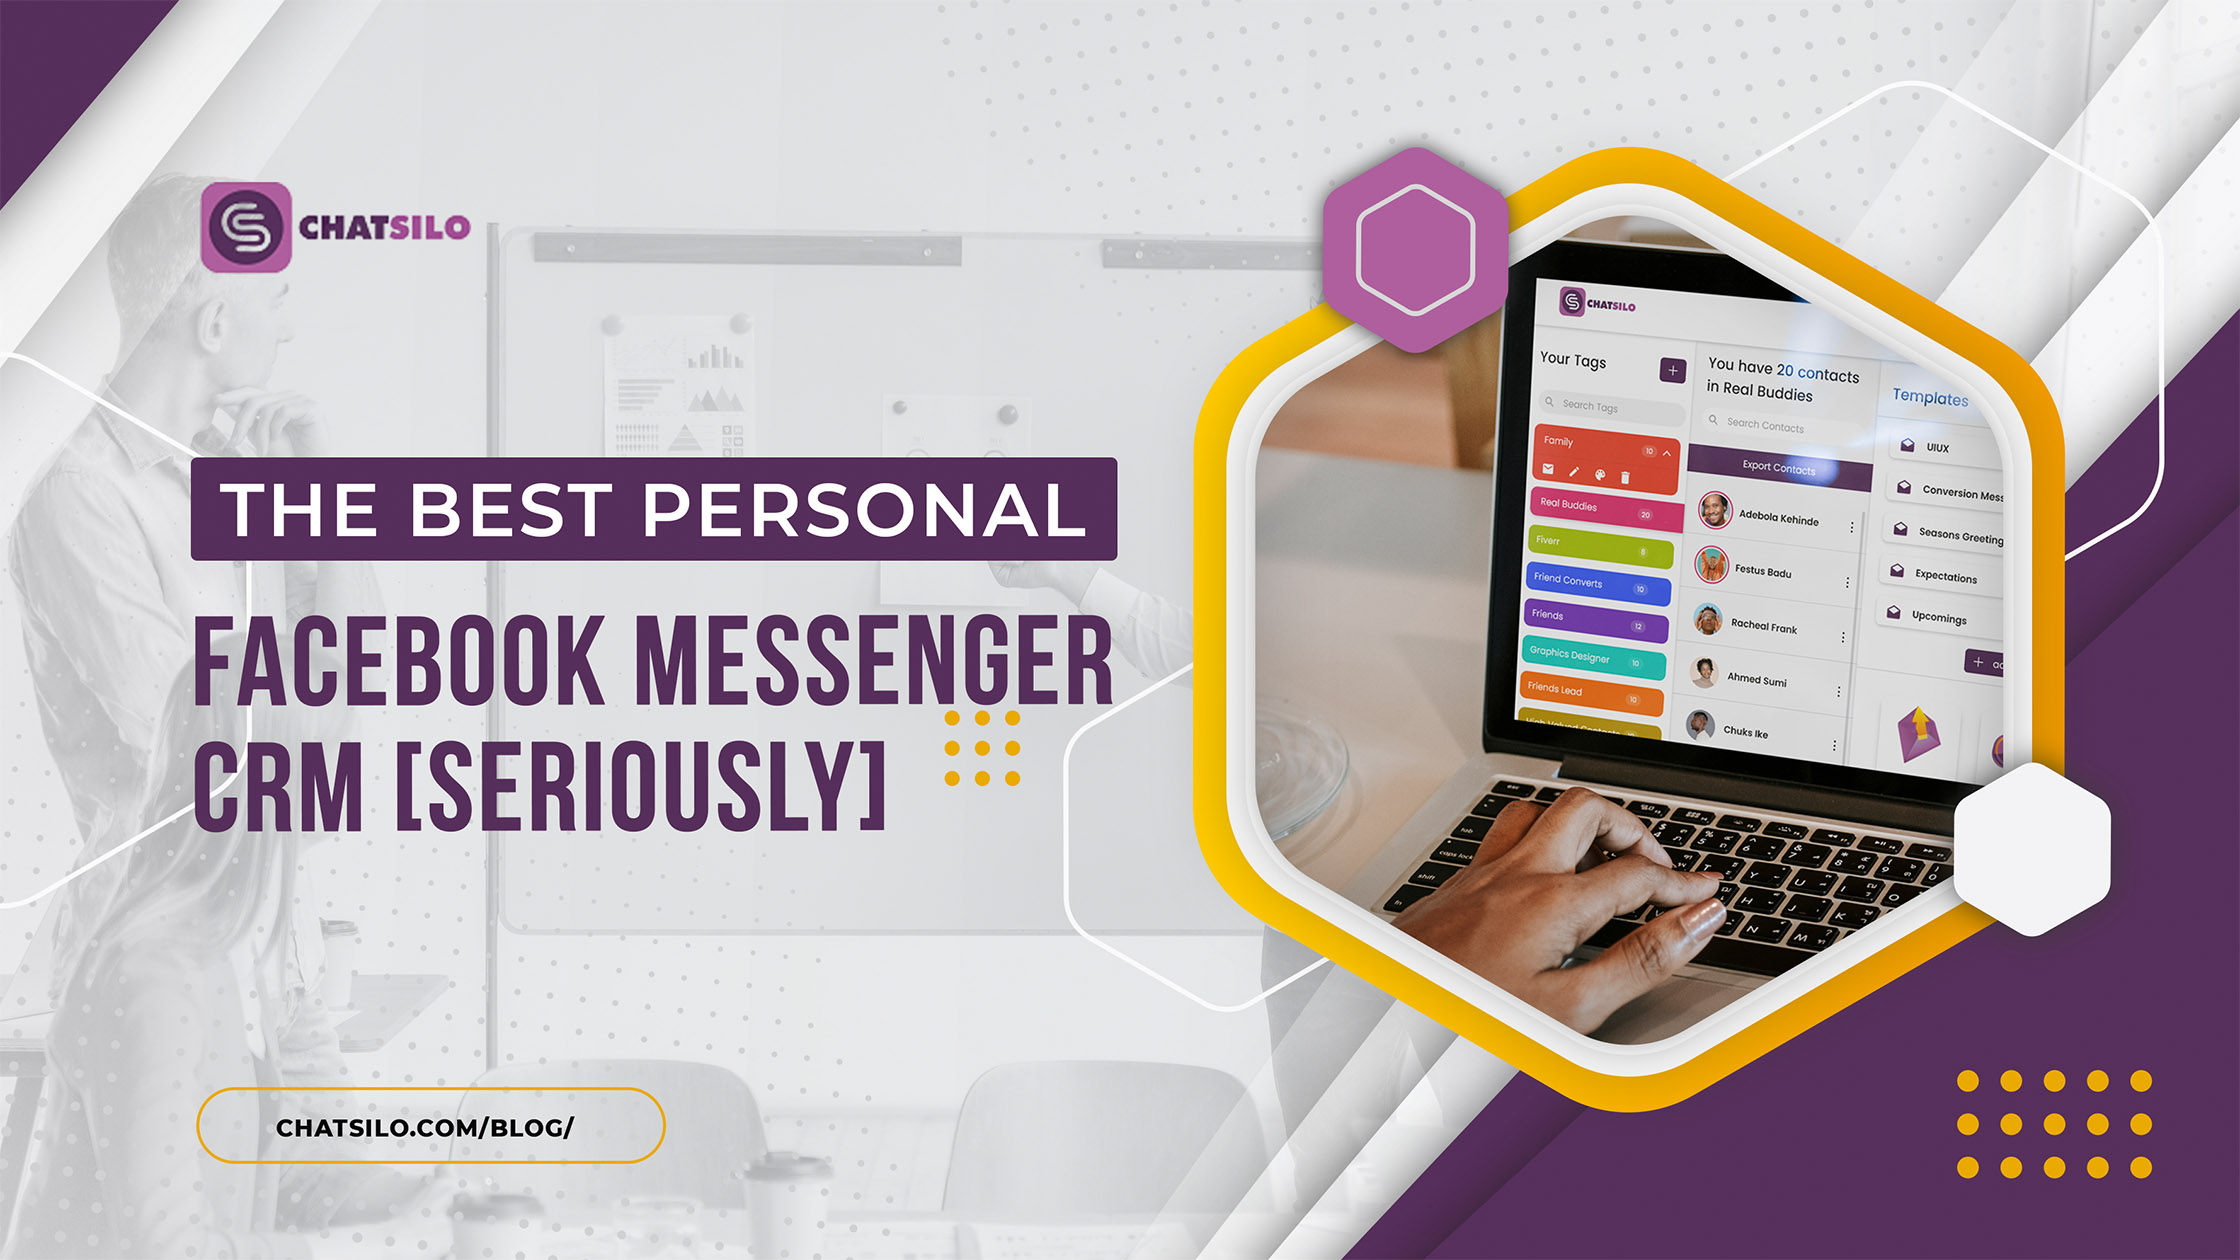 The Best Personal Facebook Messenger CRM [Seriously]